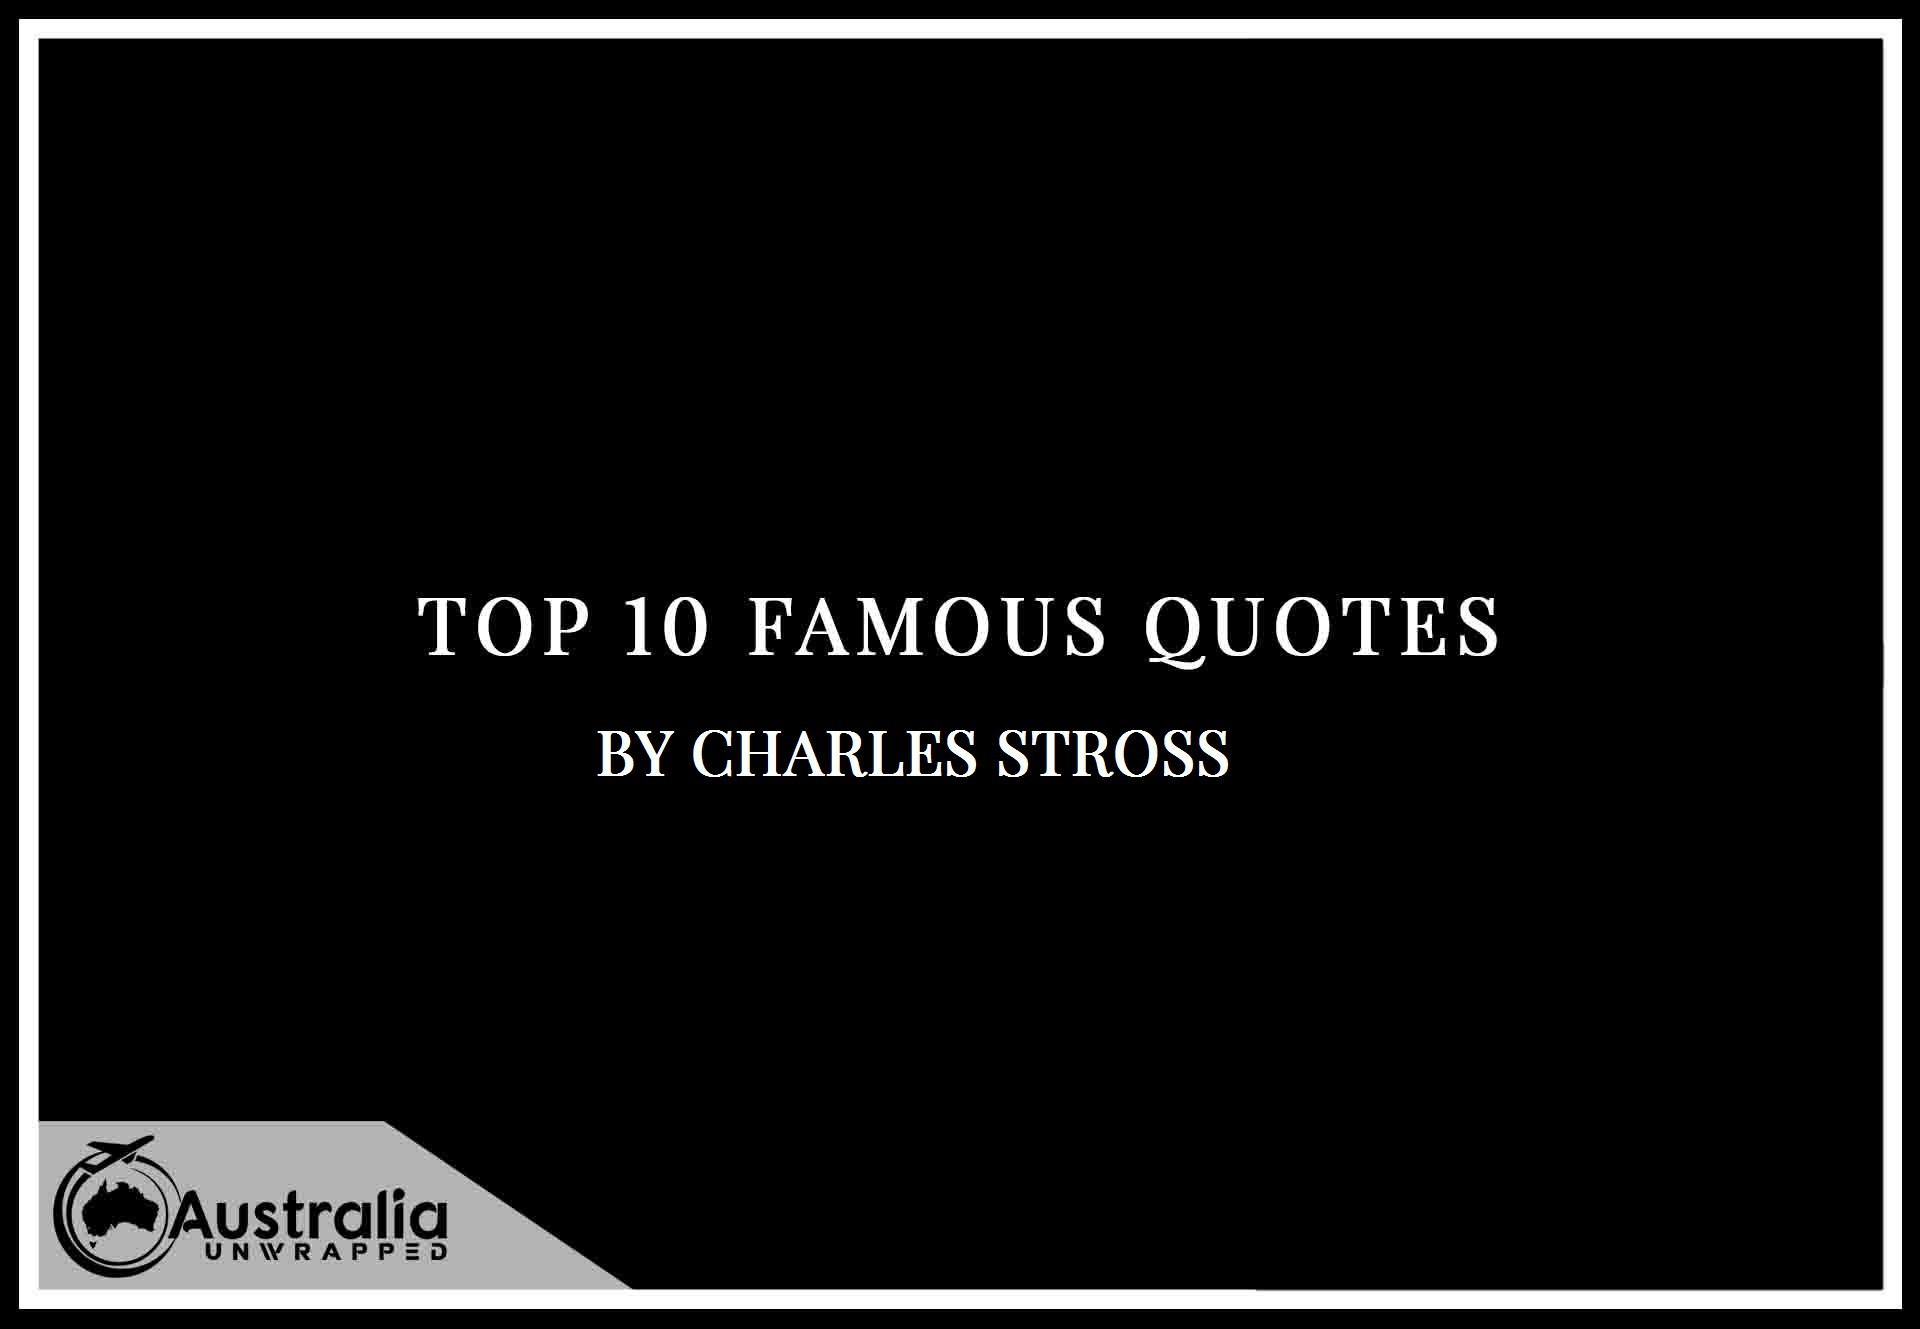 Charles Stross's Top 10 Popular and Famous Quotes